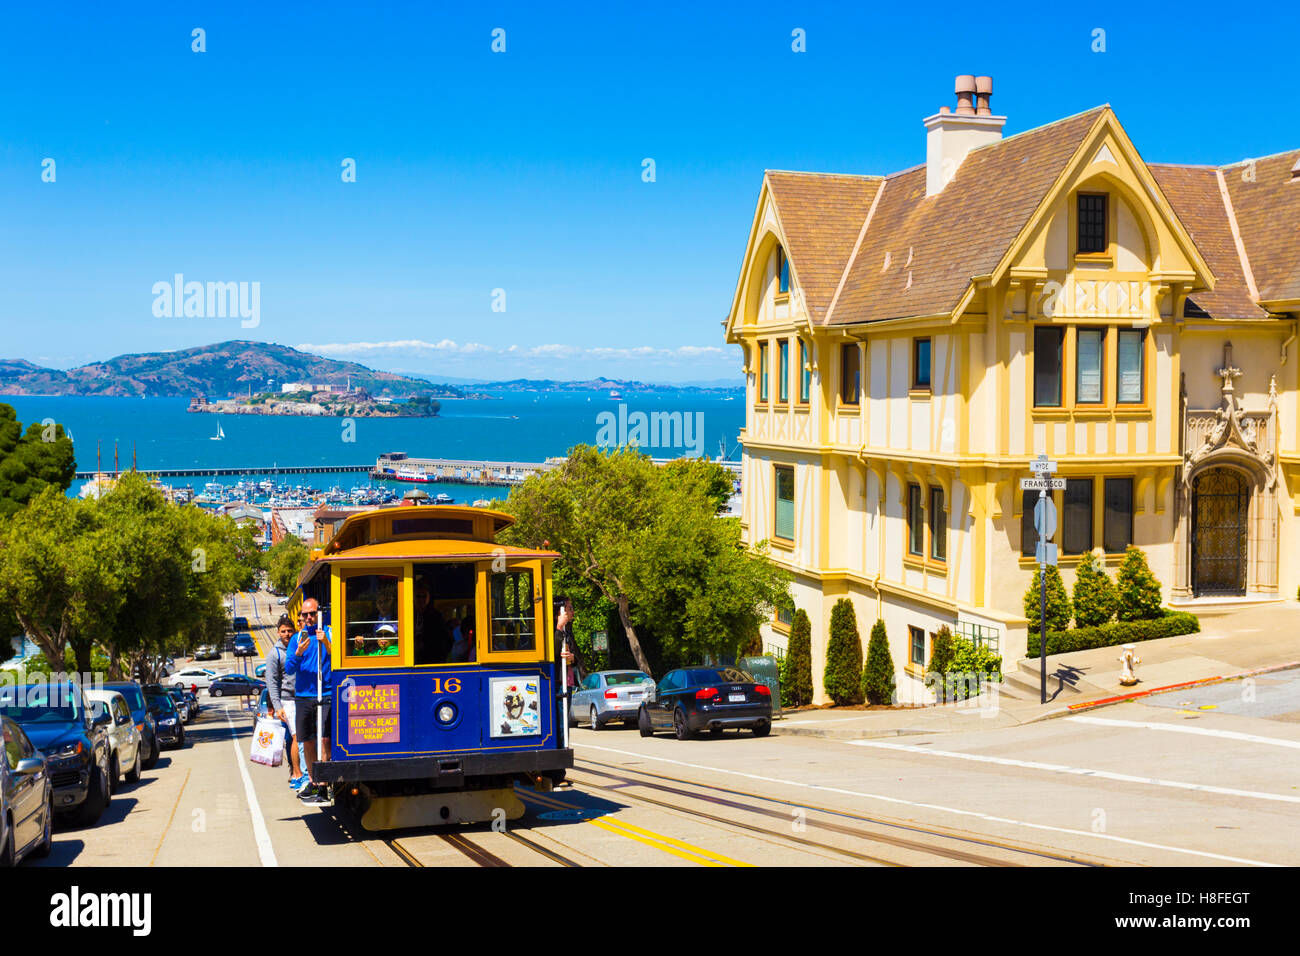 Blue cable car with hanging tourists going uphill on steep Hyde St with sweeping view of Alcatraz Prison, bay water - Stock Image